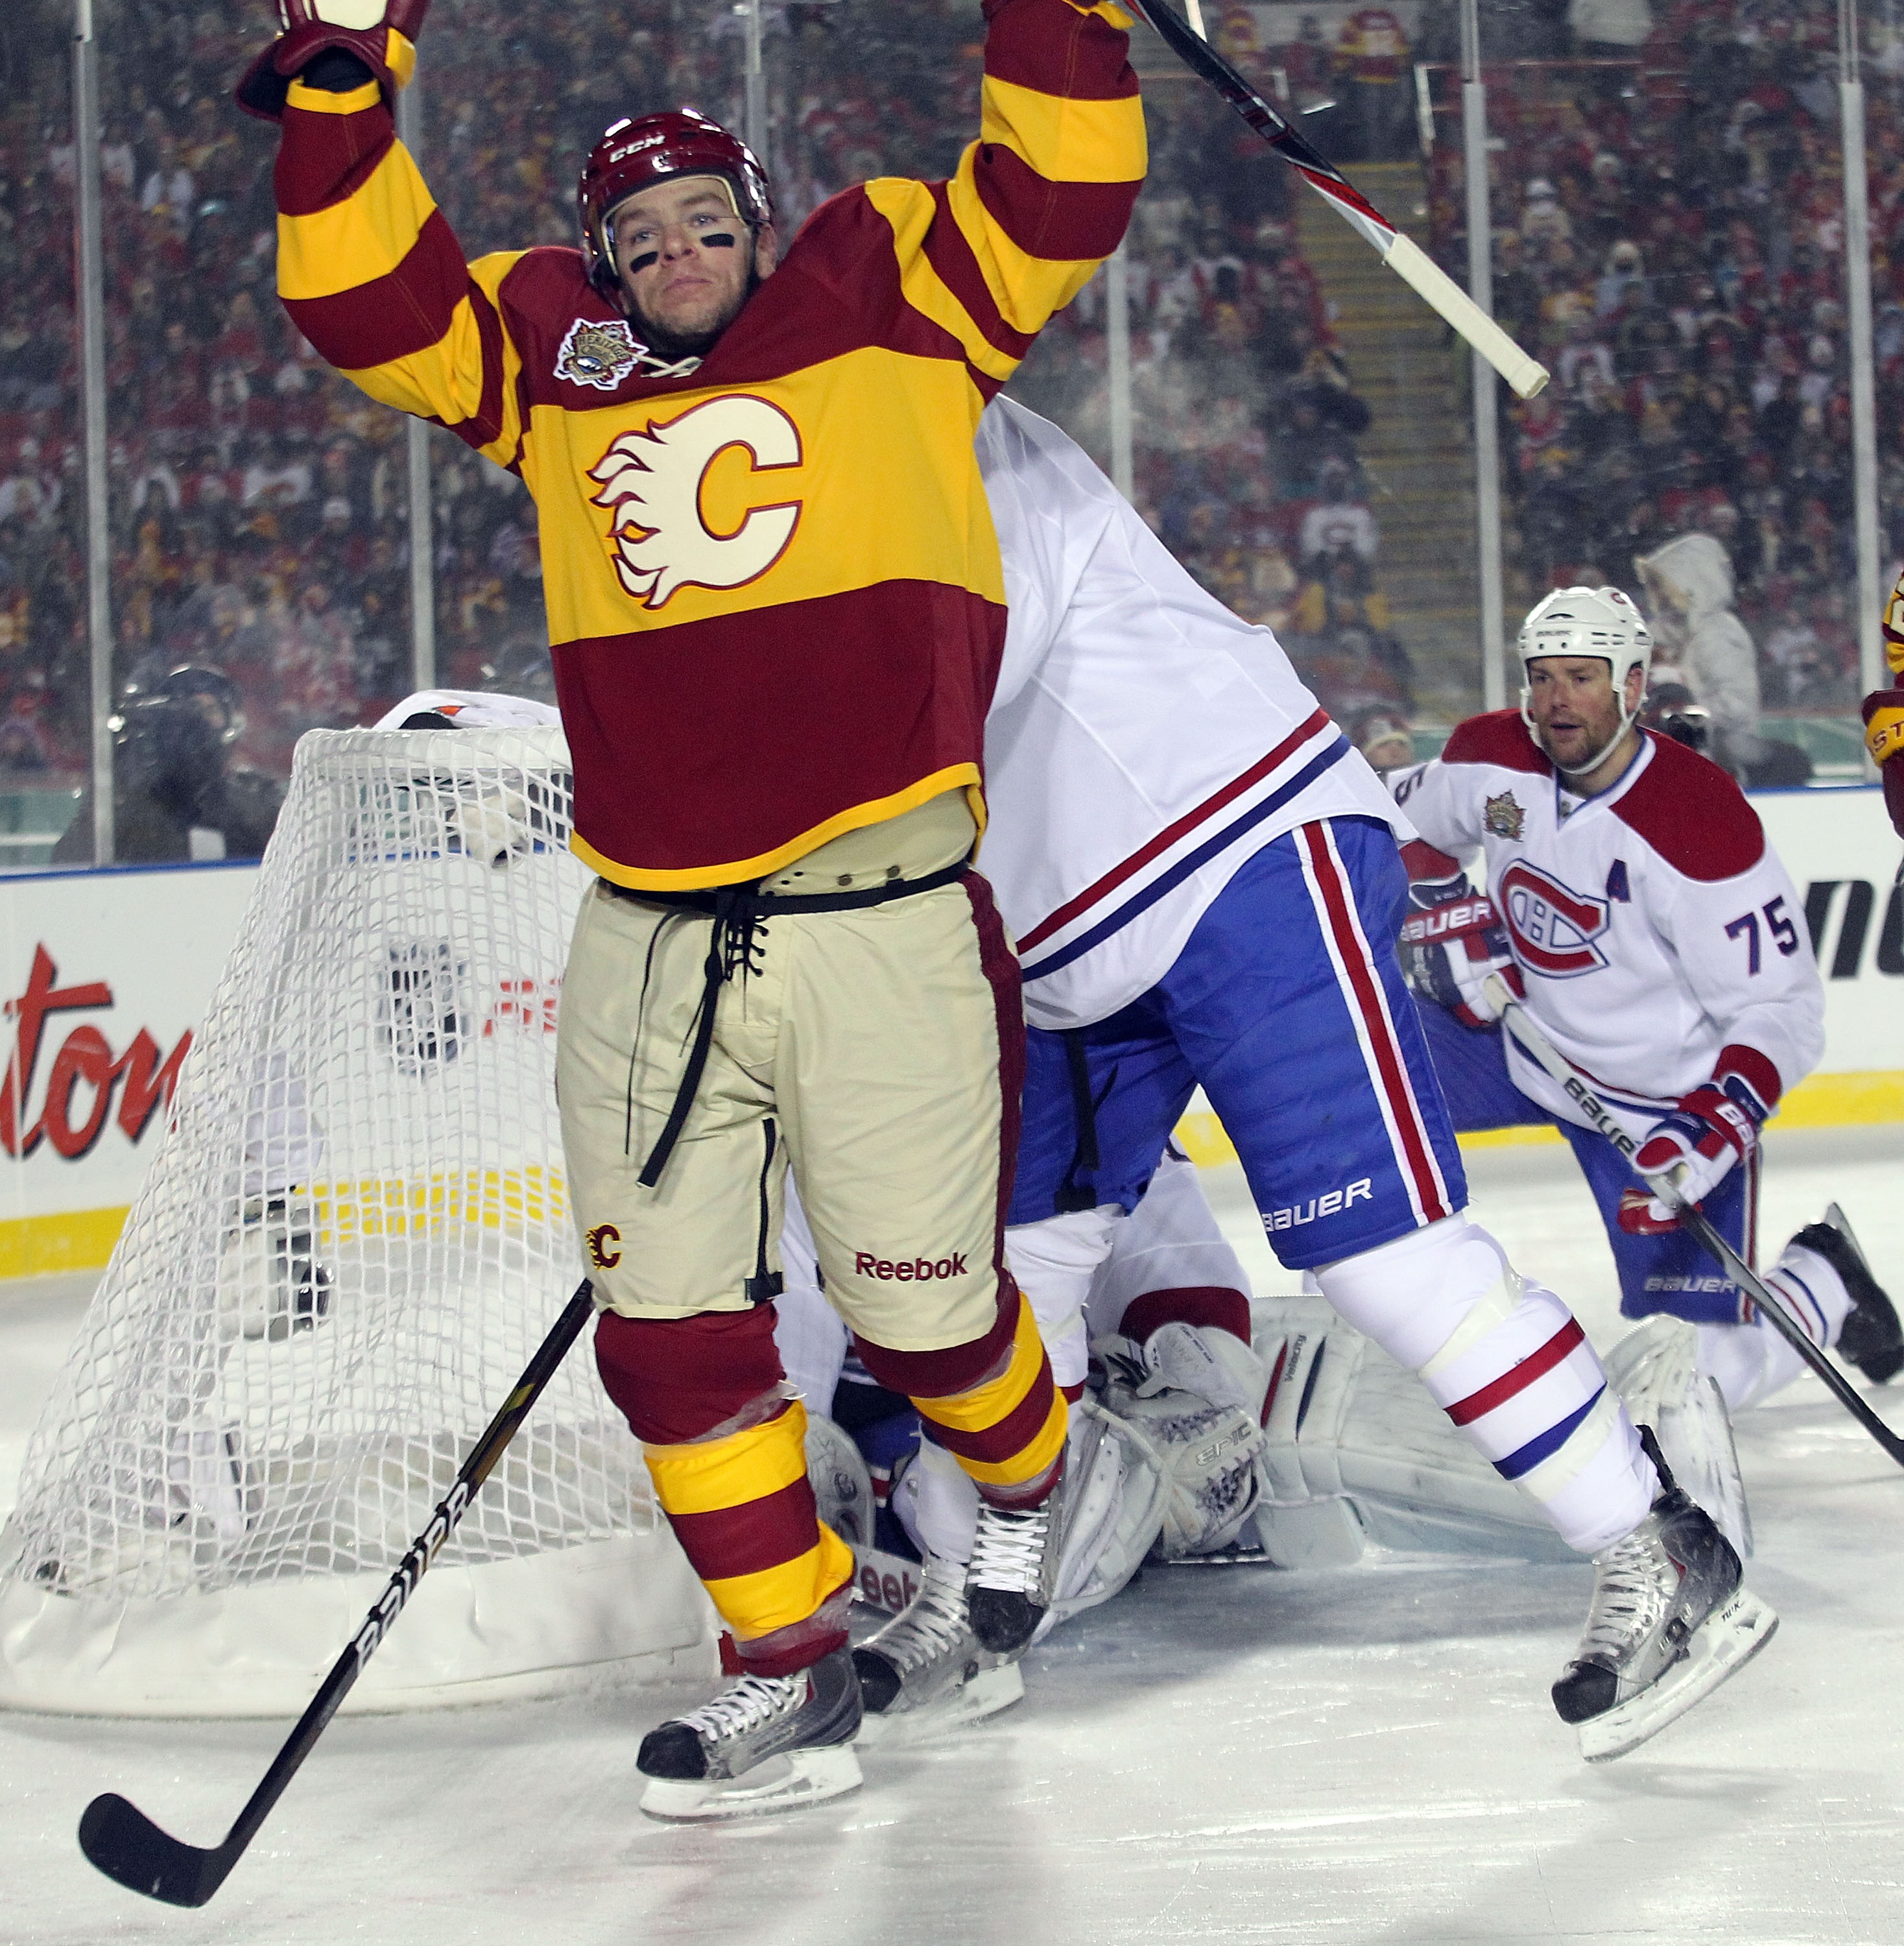 CALGARY, AB - FEBRUARY 20:  Alex Tanguay #40 of the Calgary Flames celebrates his goal at 10:53 of the third period during the 2011 NHL Heritage Classic Game at McMahon Stadium on February 20, 2011 in Calgary, Alberta, Canada. The Flames defeated the Cana